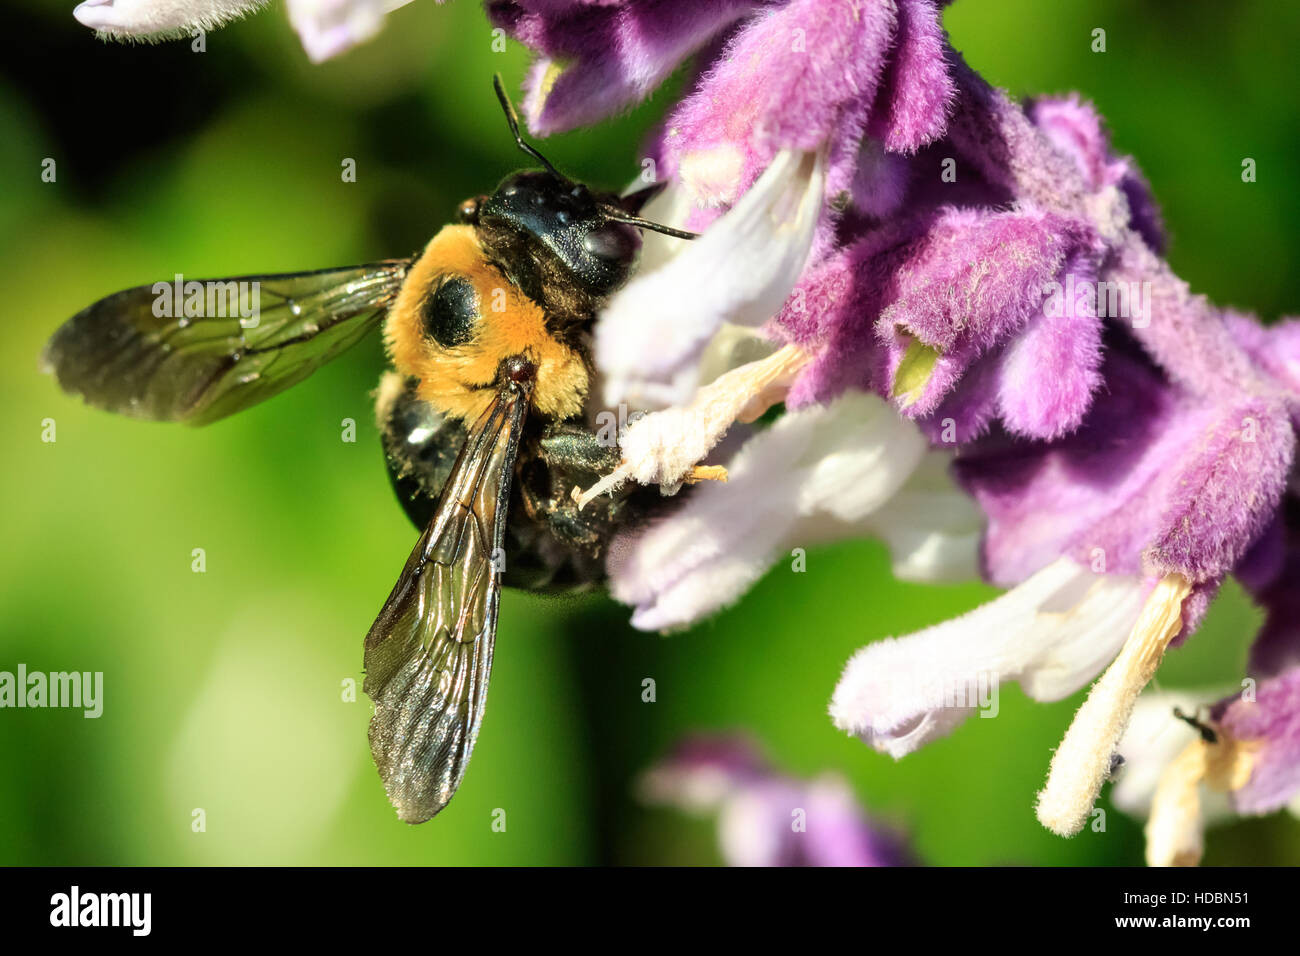 A larger bumble bee sitting on some backyard flowers. - Stock Image